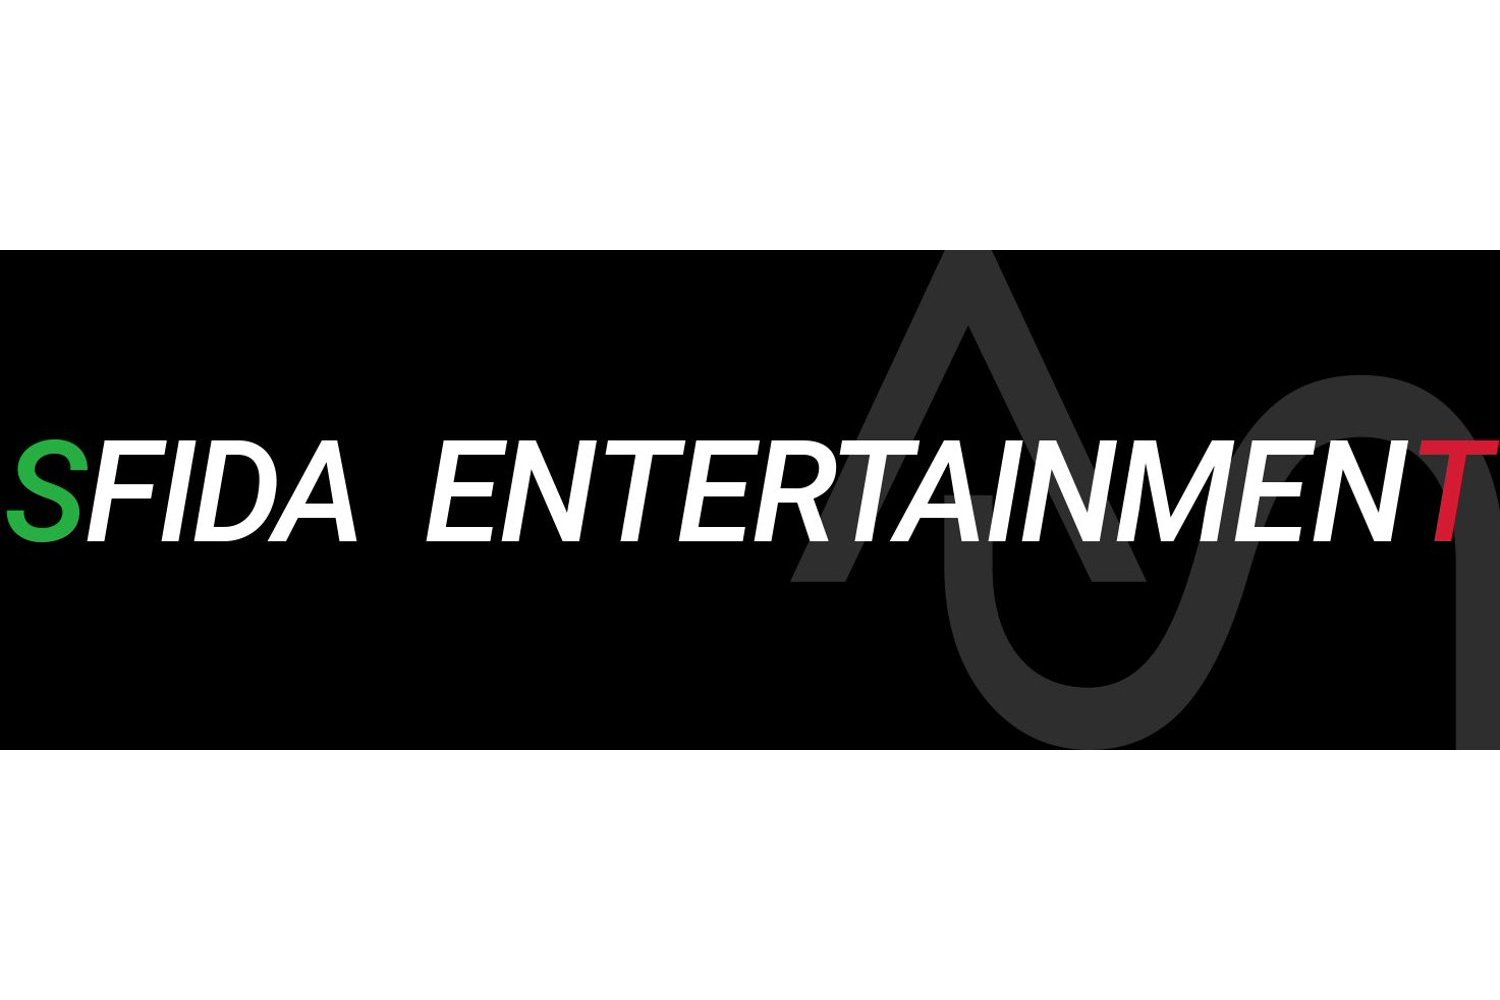 SFIDA ENTERTAINMENT